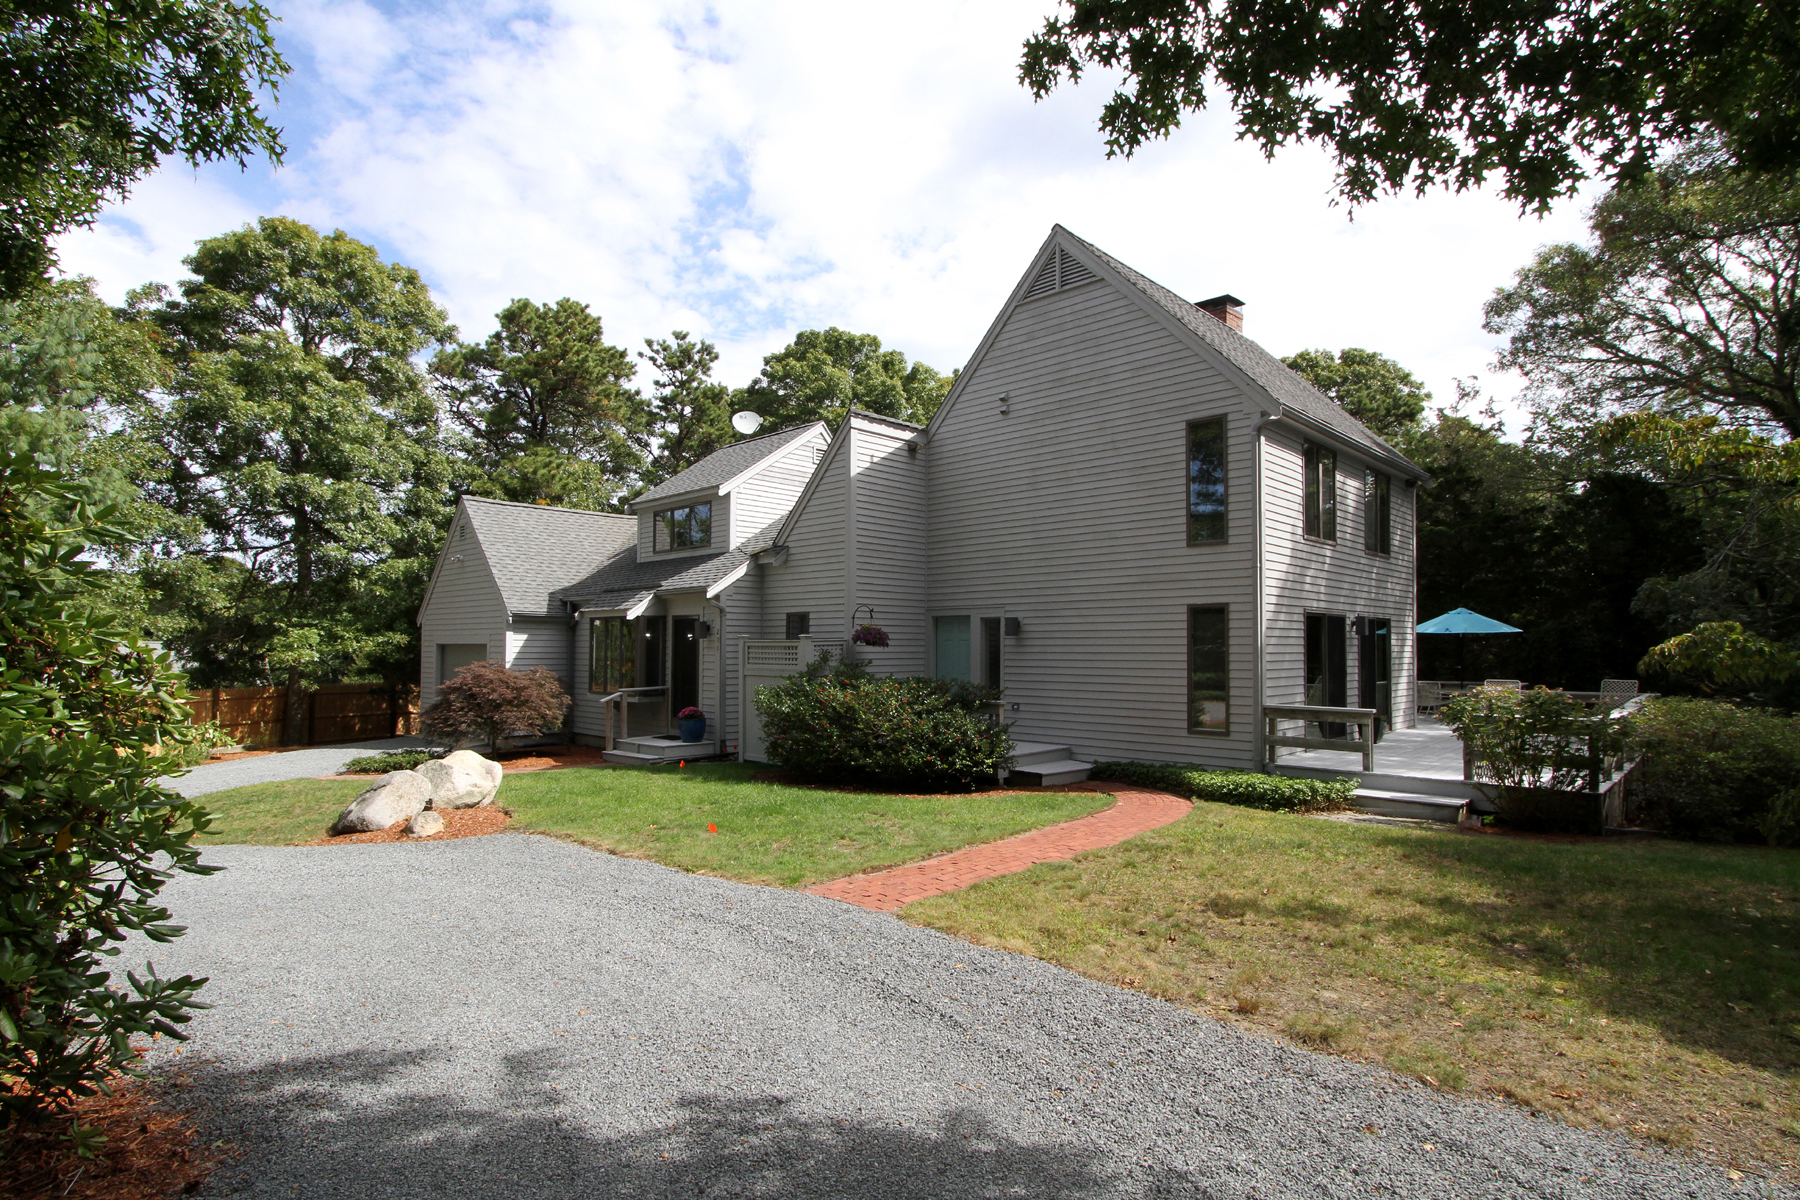 Property For Sale at 208 Tonset Road, Orleans, MA